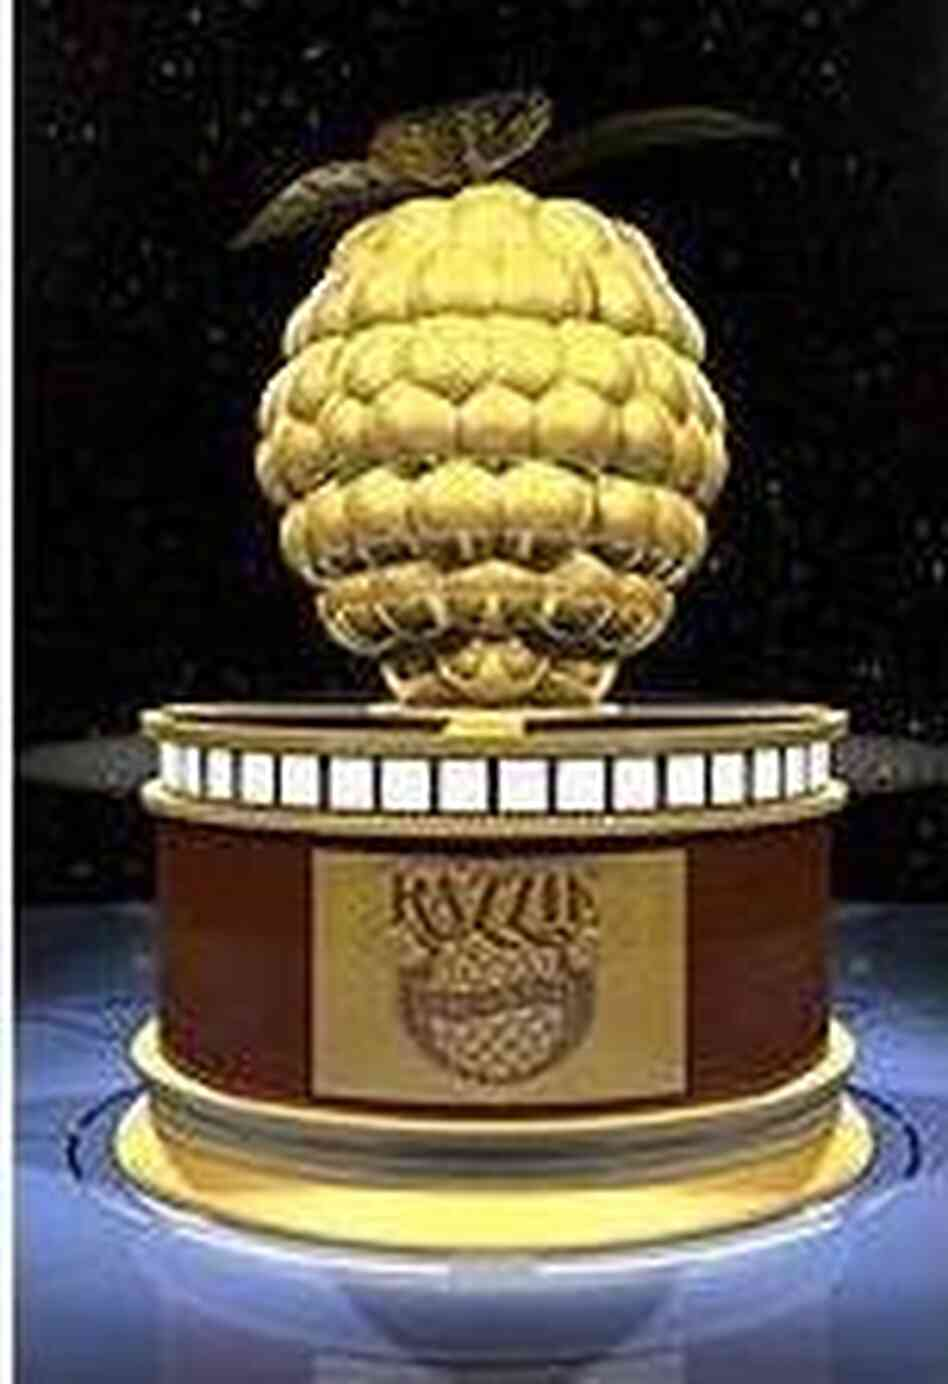 The Razzie Awards